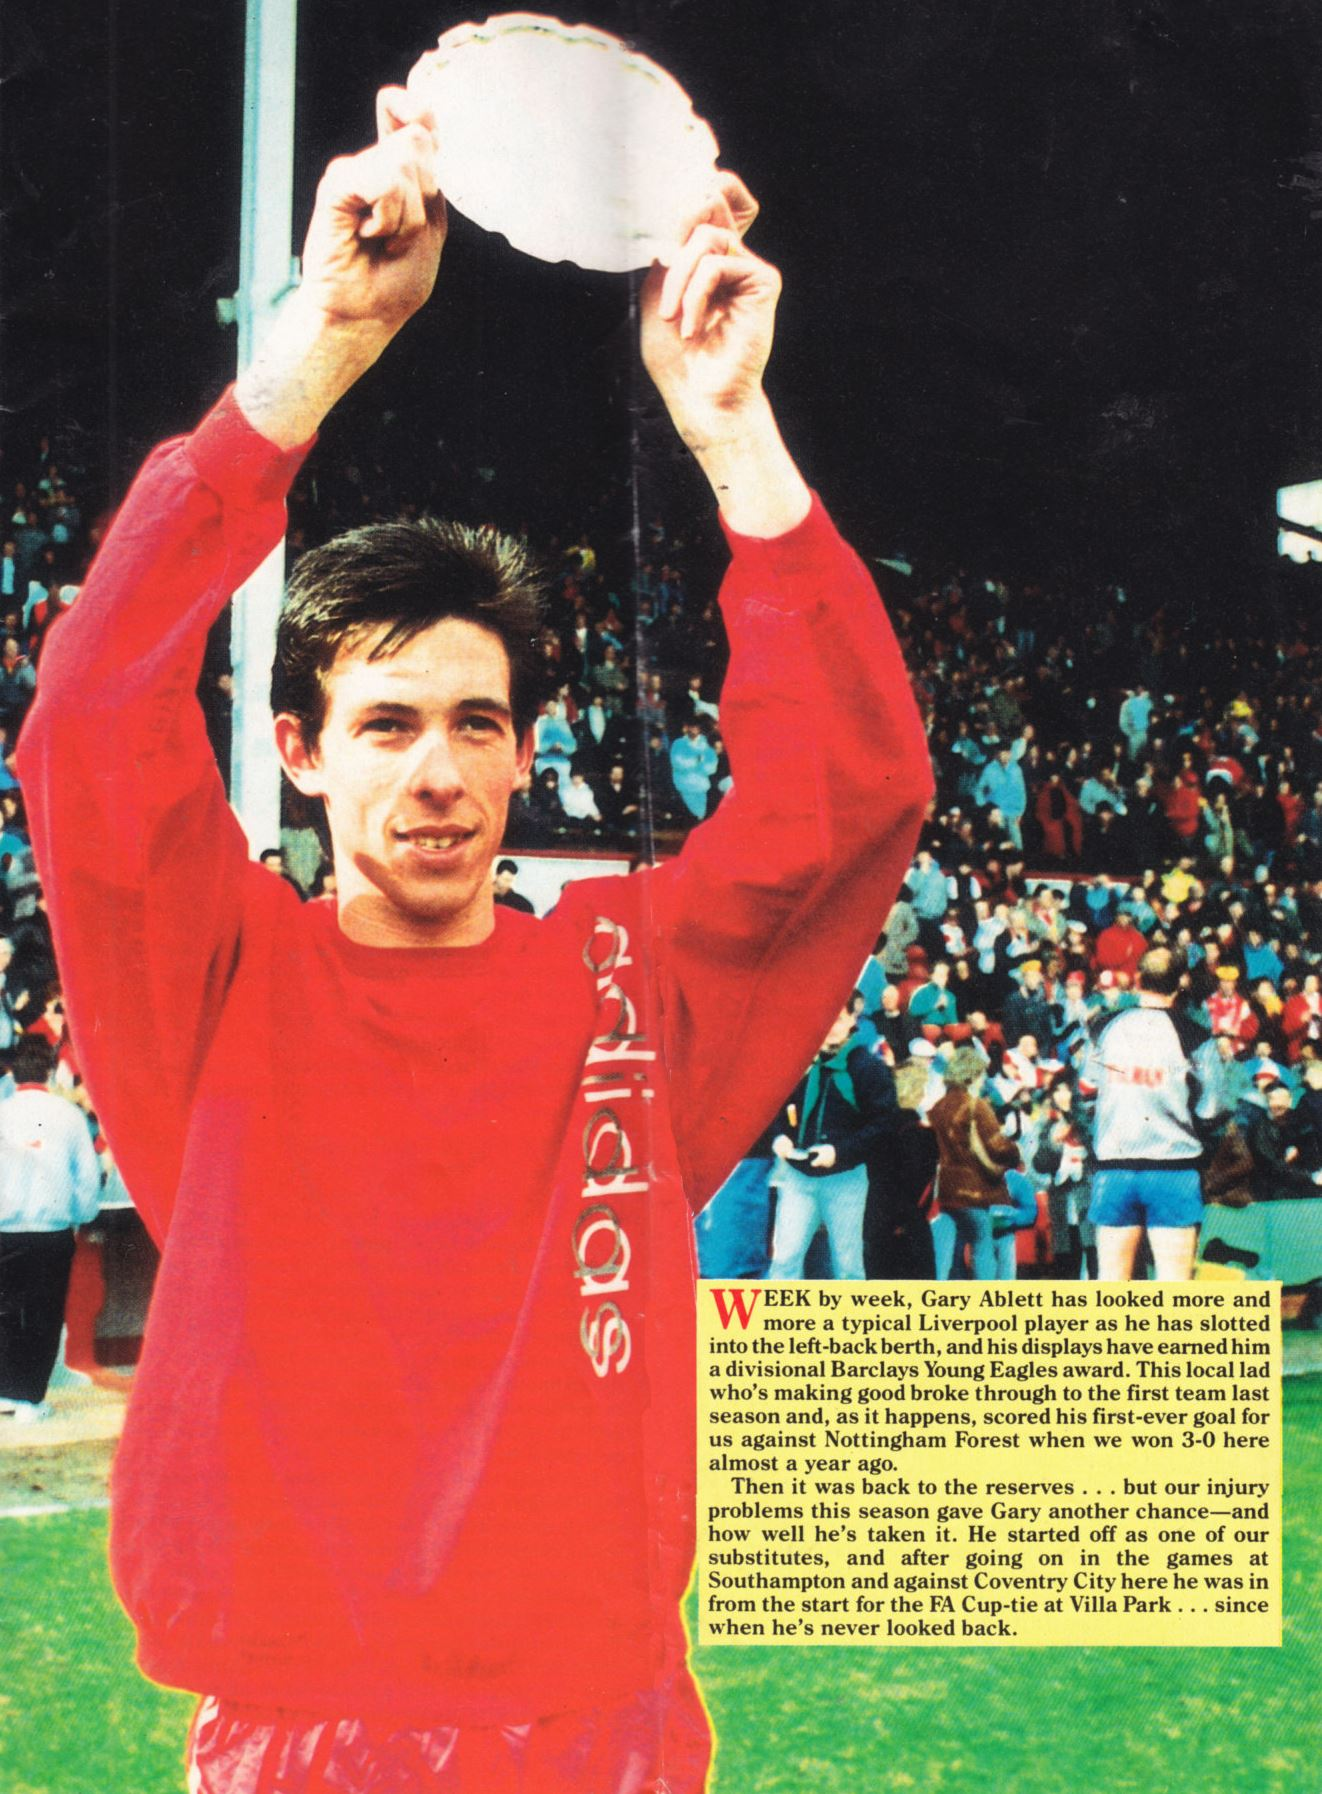 Looking like a typical Liverpool player - April 1988